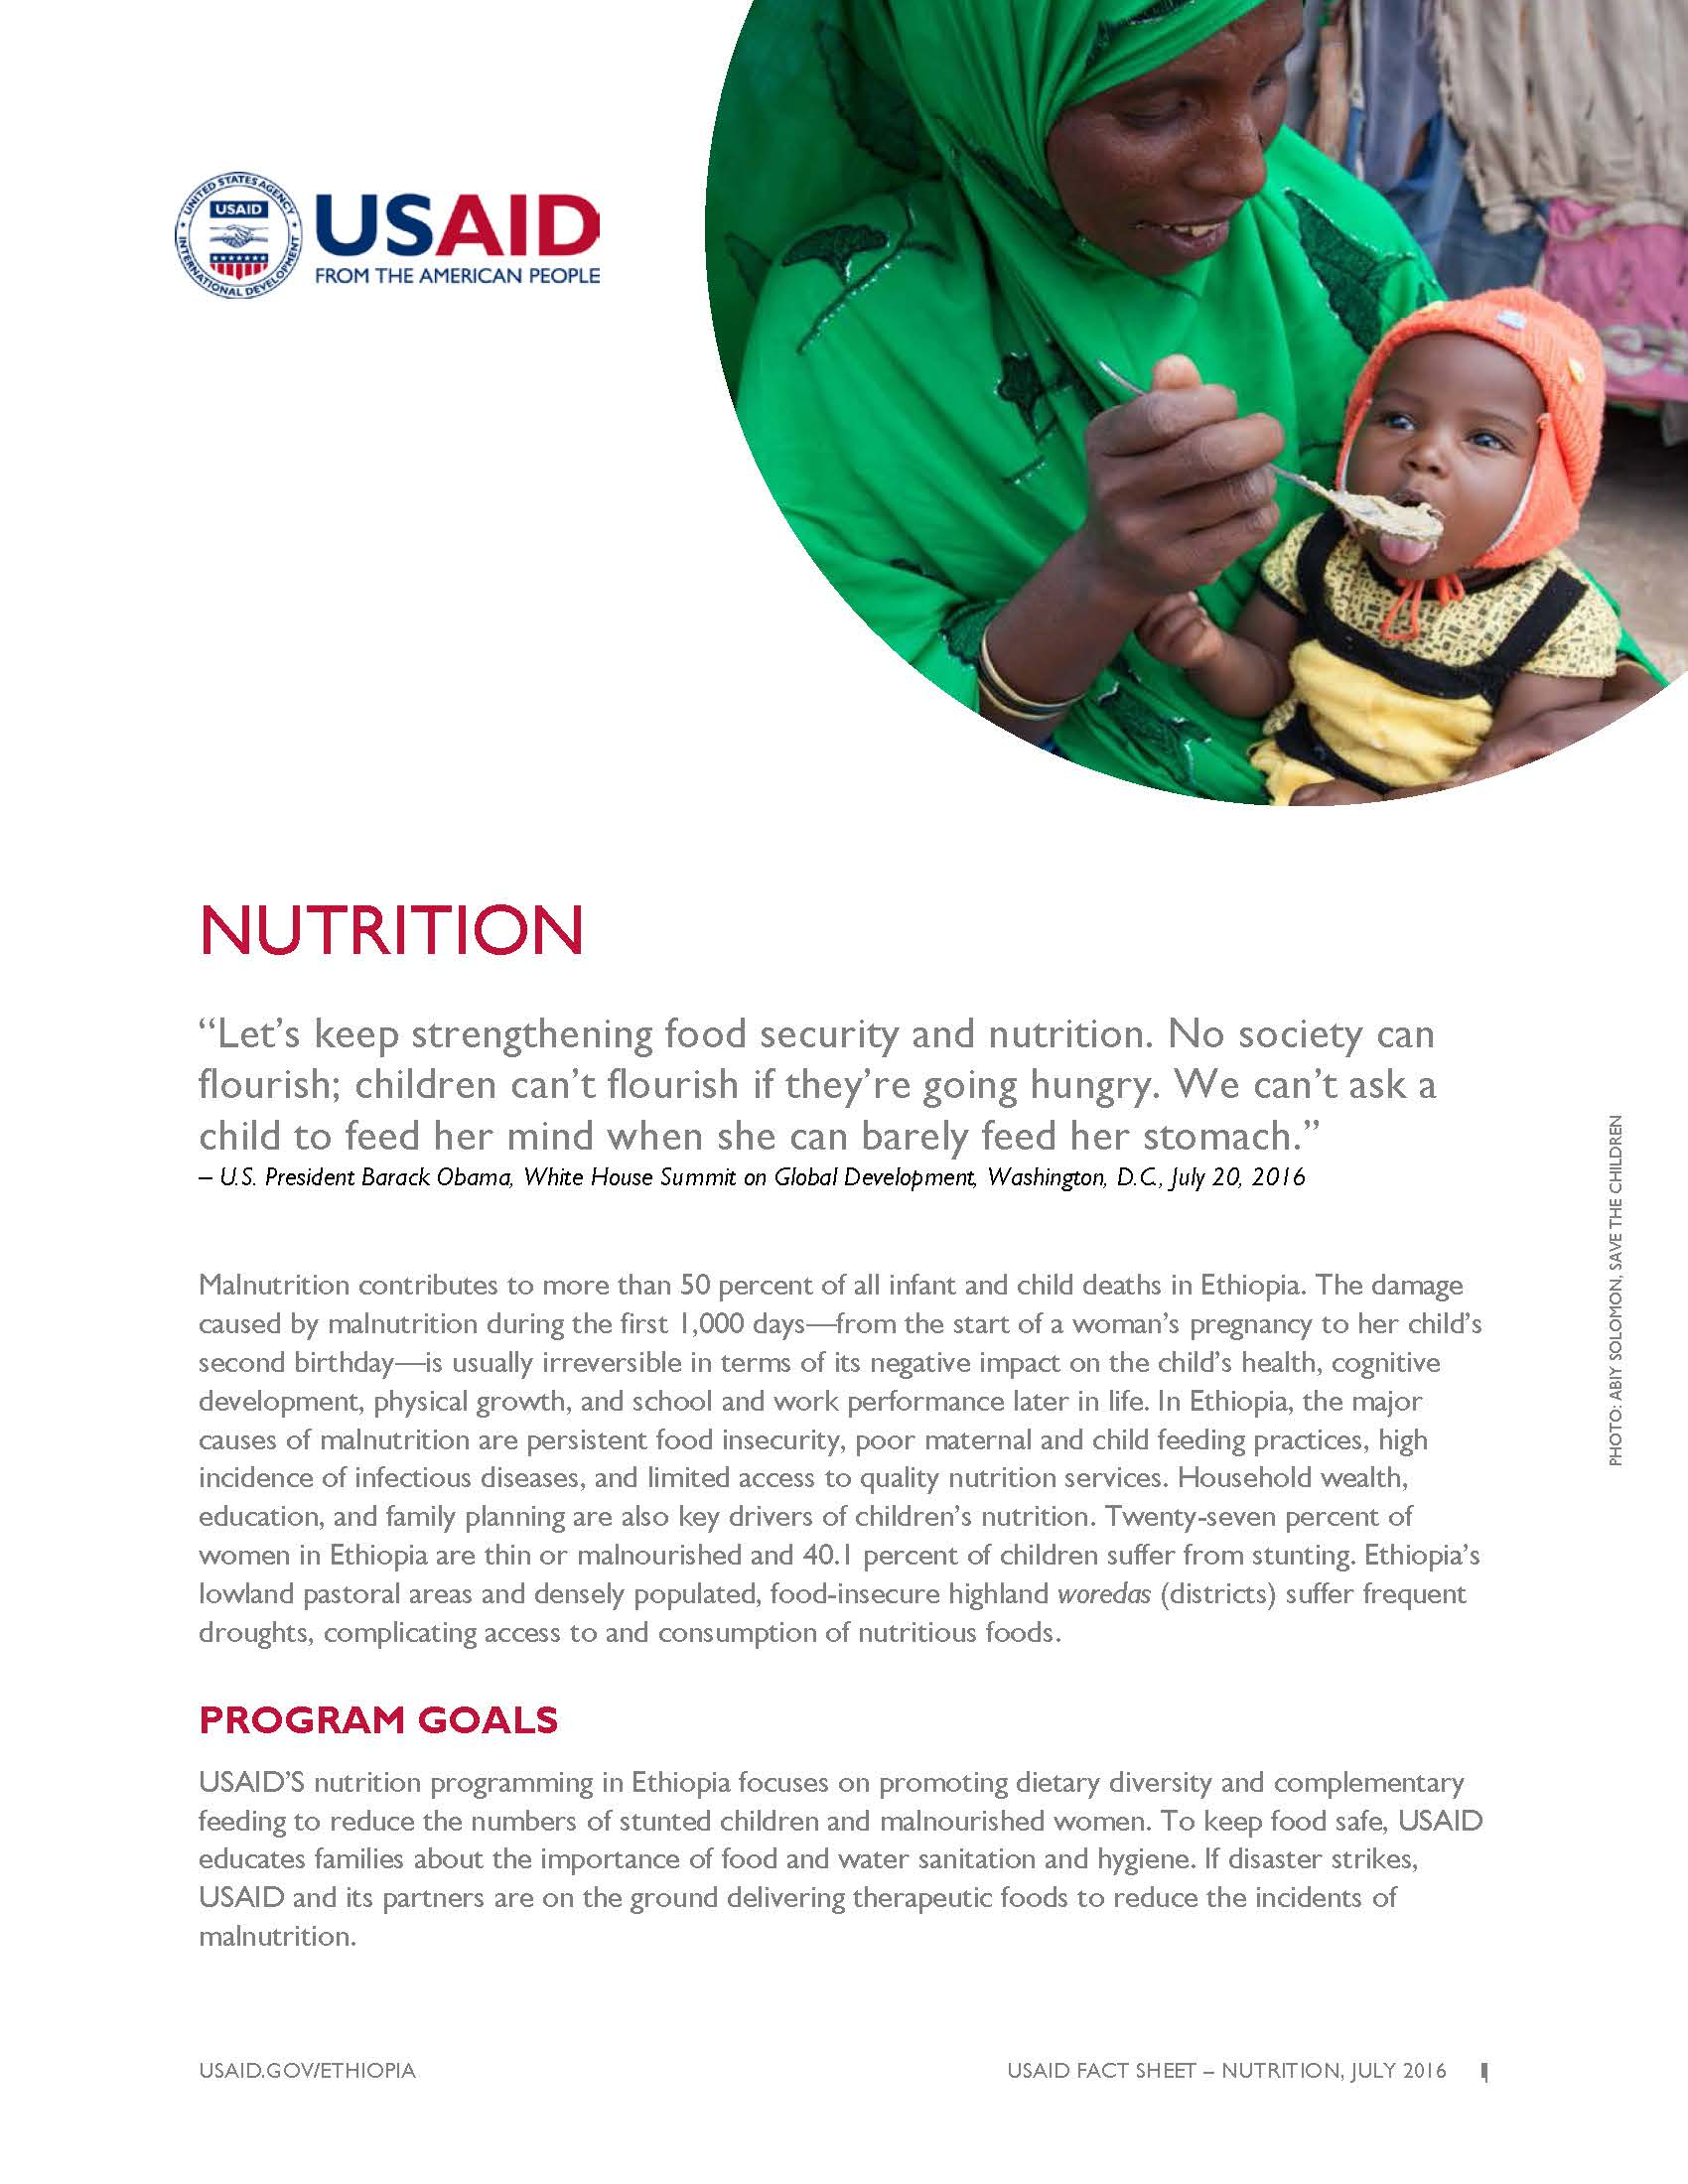 Ethiopia Nutrition Fact Sheet